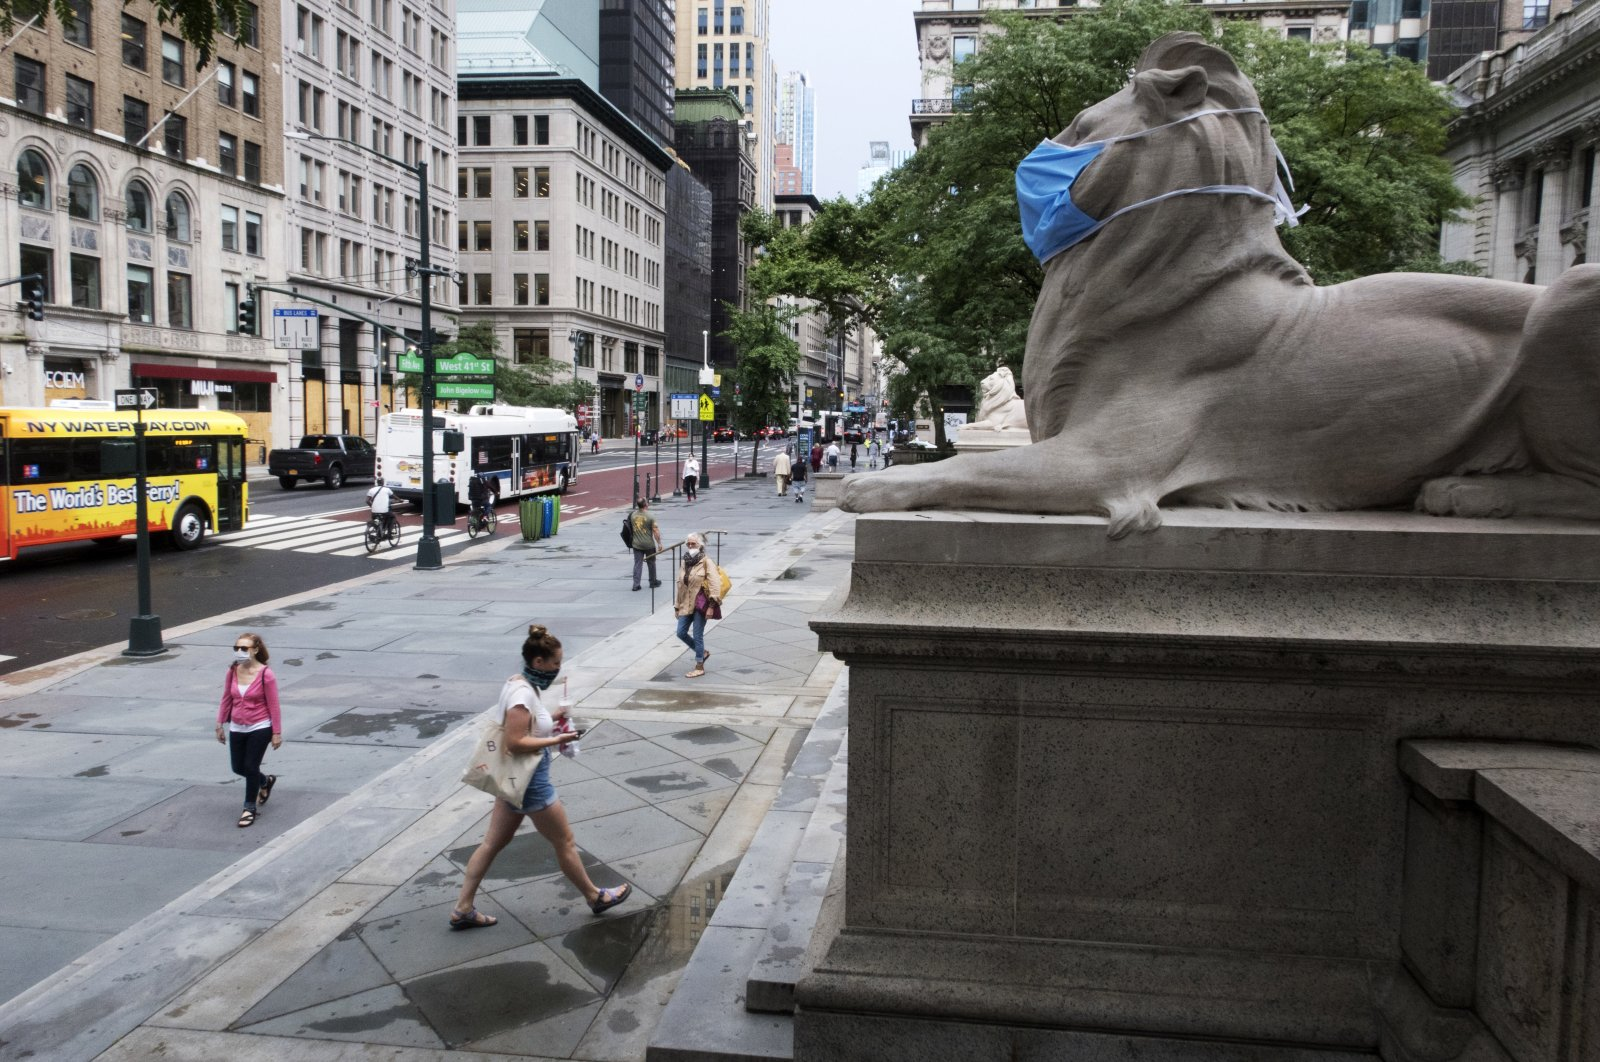 A face mask covers the mouth and nose of one of the iconic lion statues in front of the New York Public Library's main branch, New York City, July 1, 2020. (AP Photo)